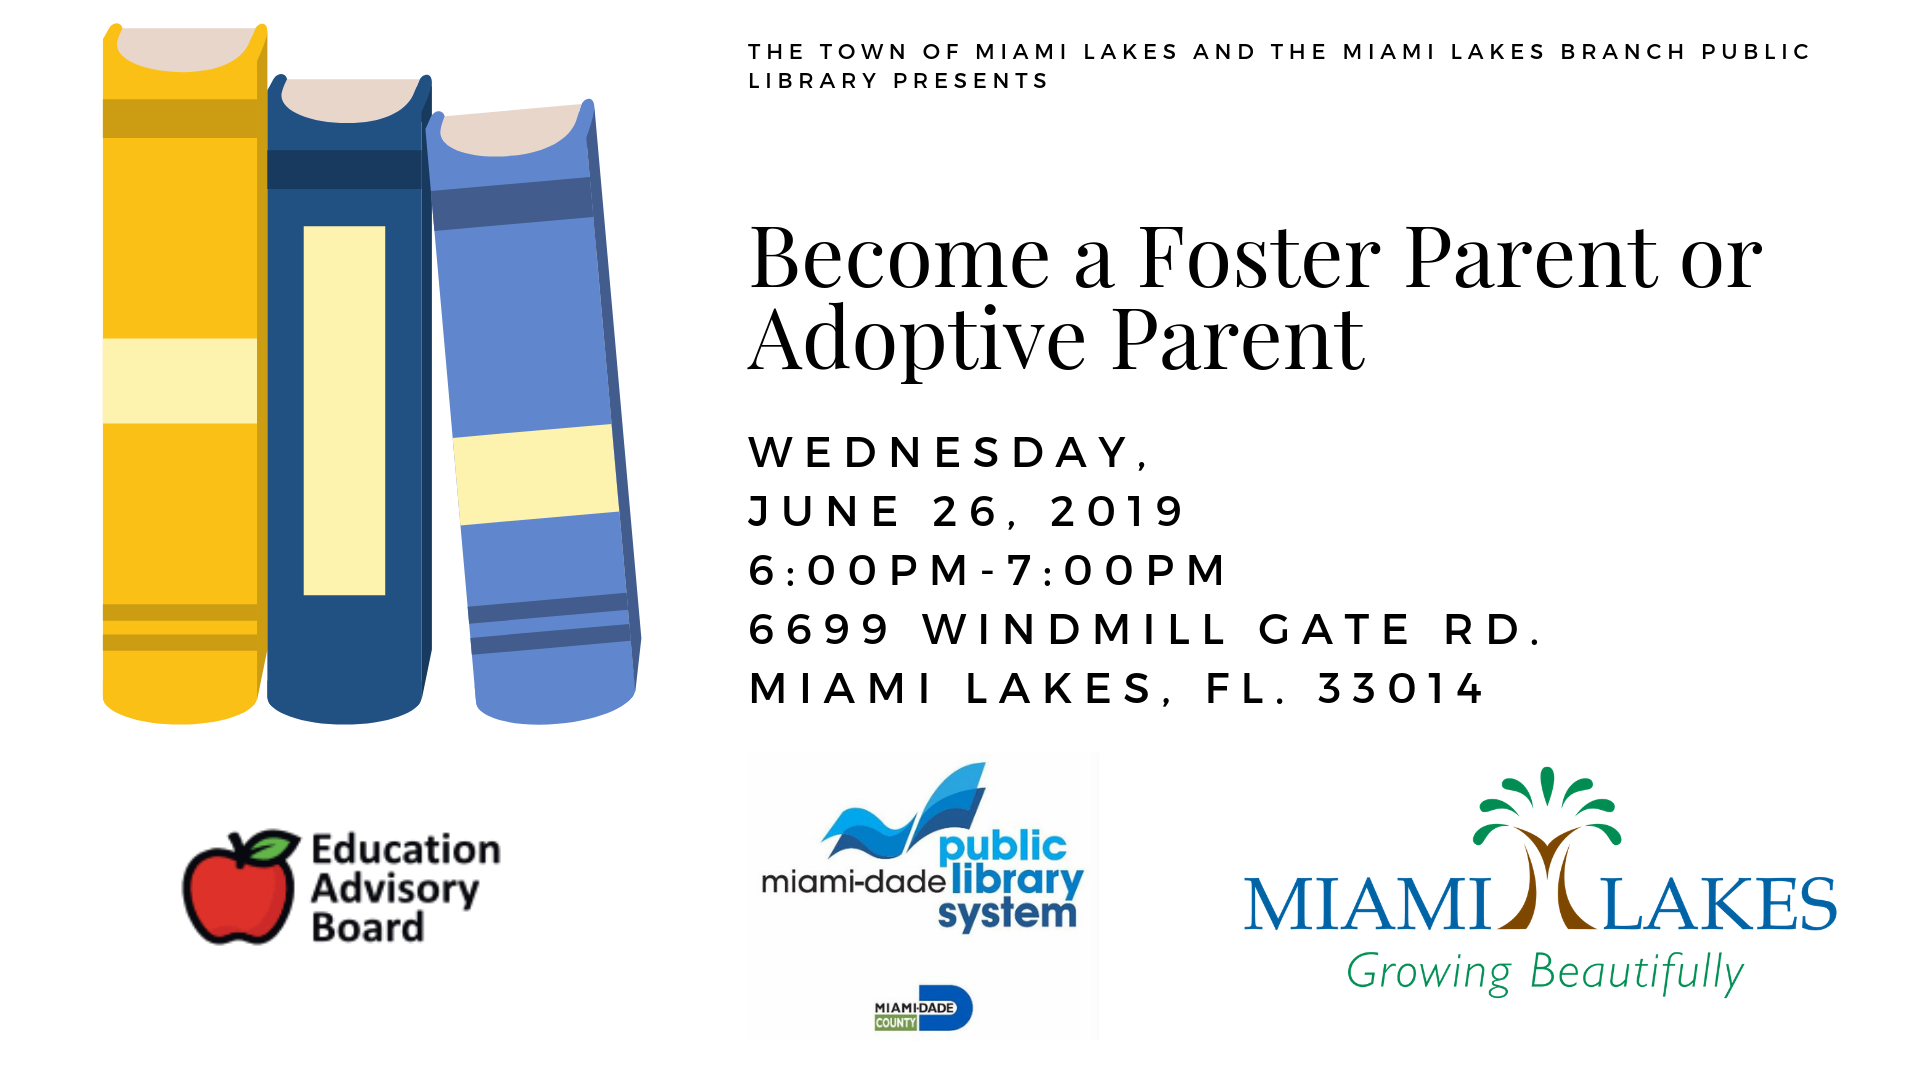 EAB Library Events Become a Foster Parent or Adoptive Parent